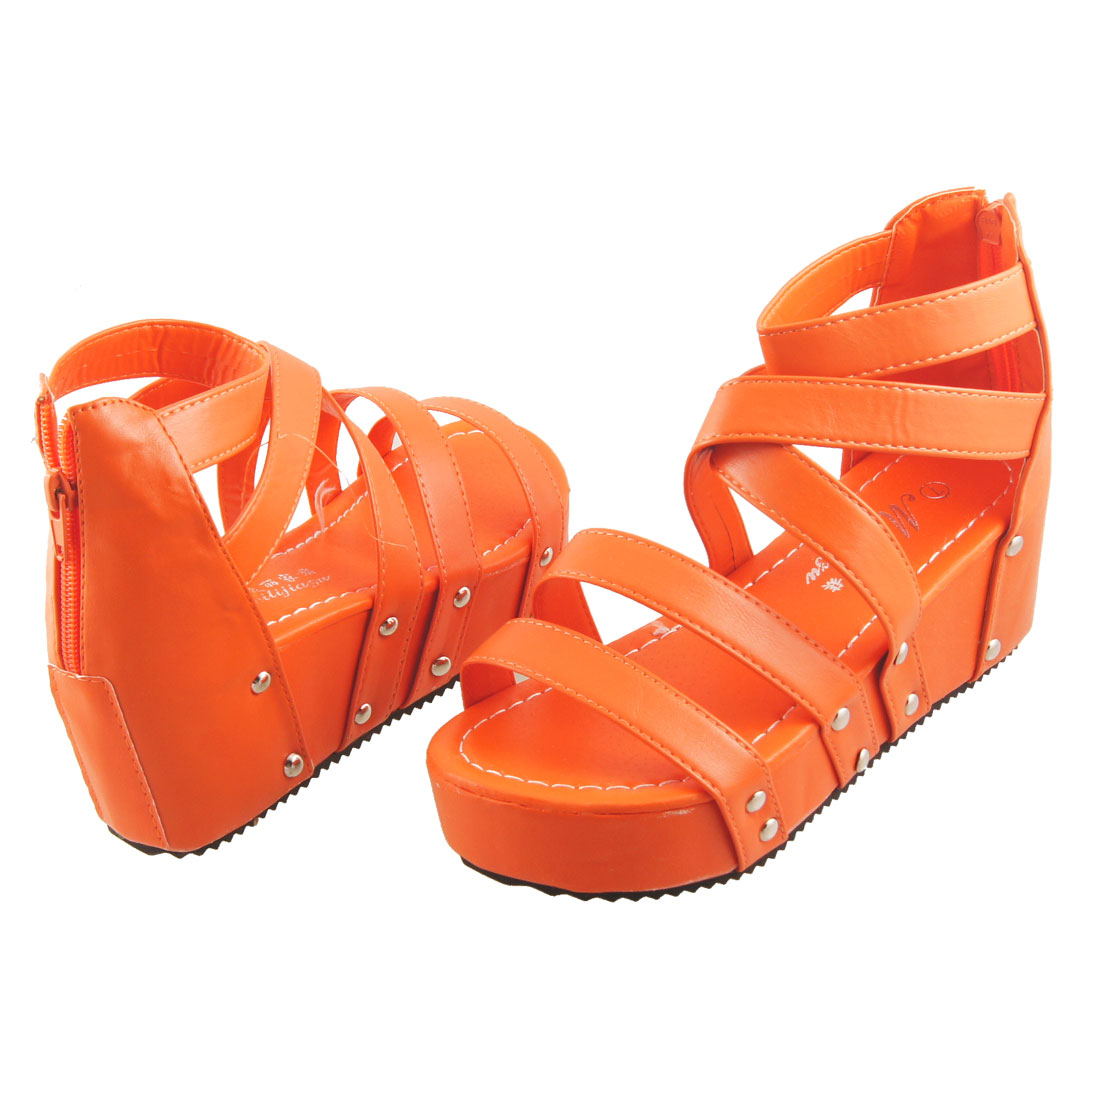 Women Faux Leather Strappy Zipper Back Ankle Sandals Wedge Shoes Orange US 5